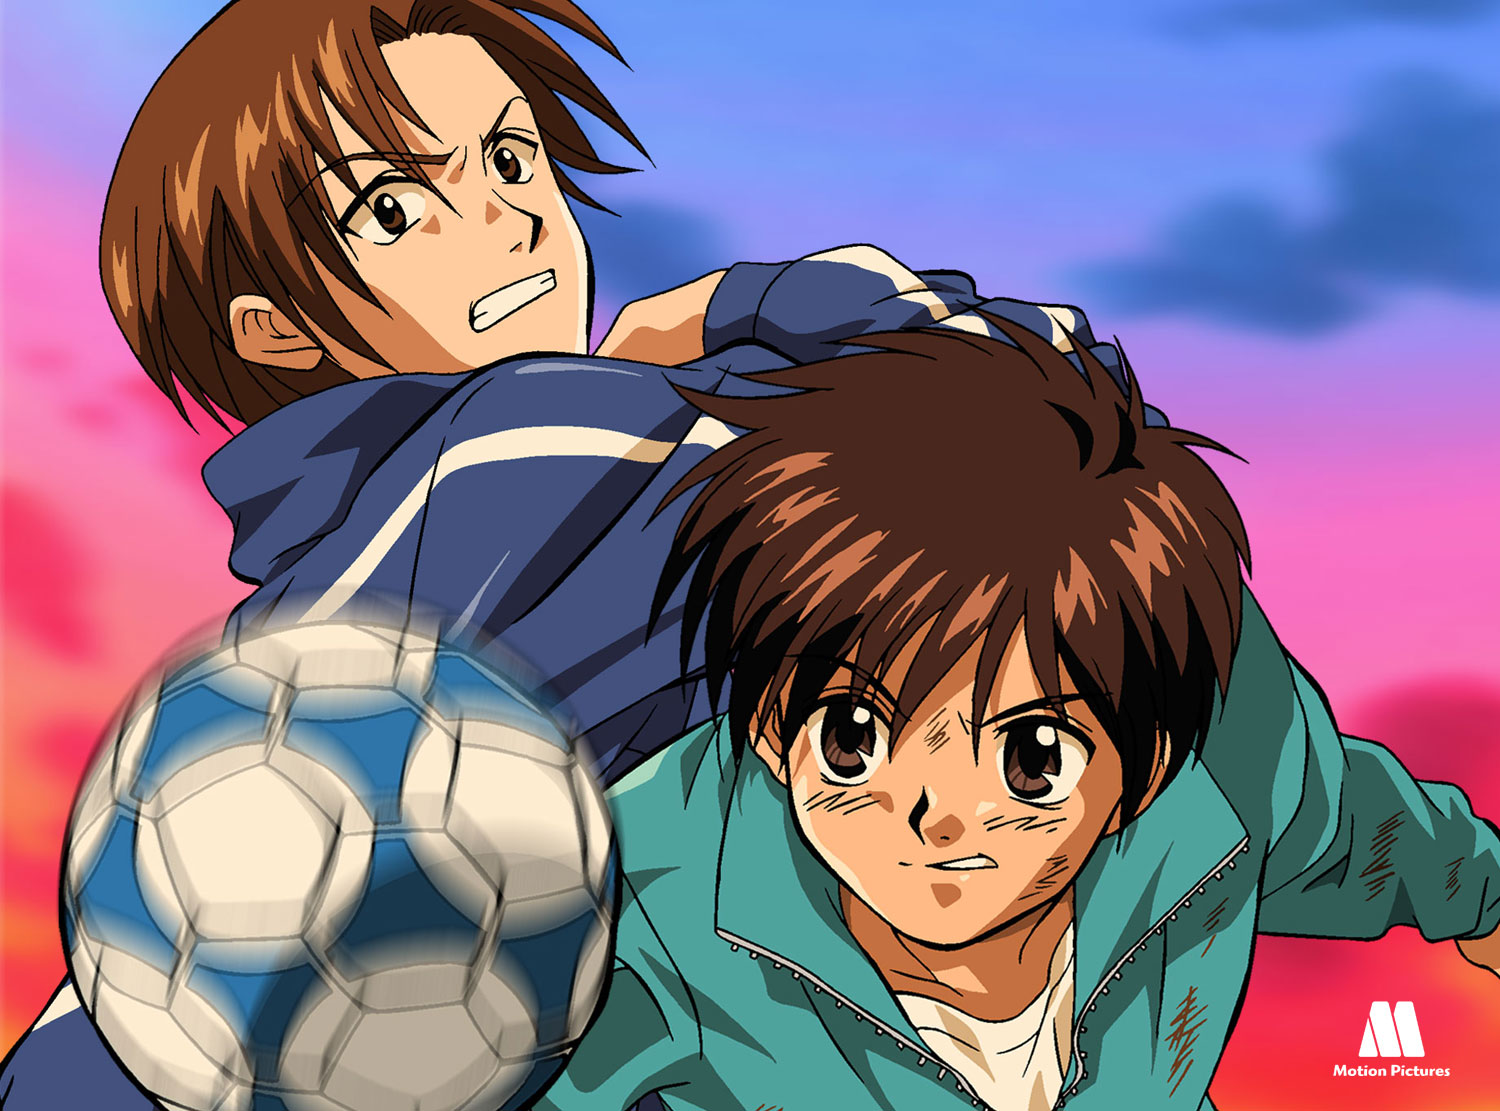 regatear, Dream Team, dibujos animados futbol, soccer anime japanese series